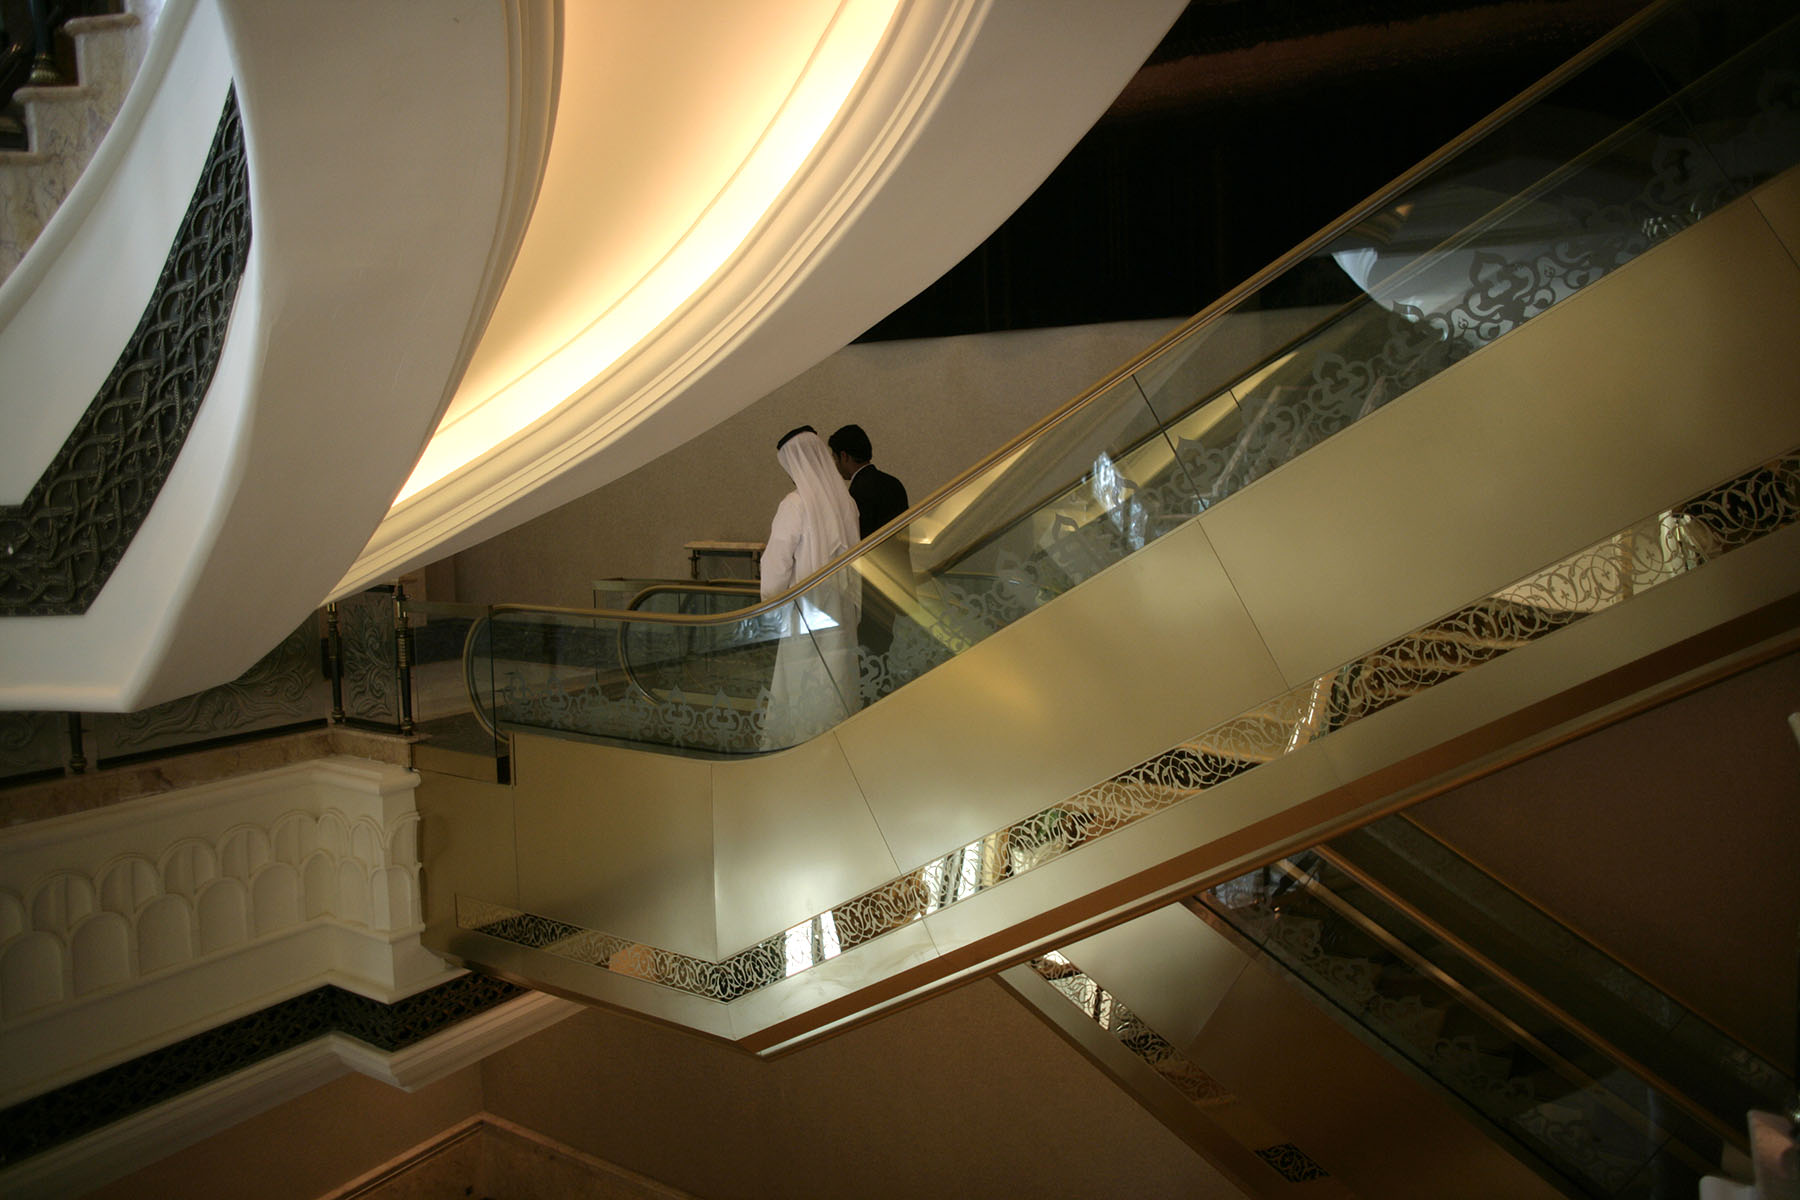 Businessmen at The Imperial Palace Hotel in Abu  Dhabi, United Arab Emirates.  The luxury 350 room hotel and conference center complex was built by UAE government at a cost of 3.5 billion dollars.Photo by Brooks Kraft/Corbis